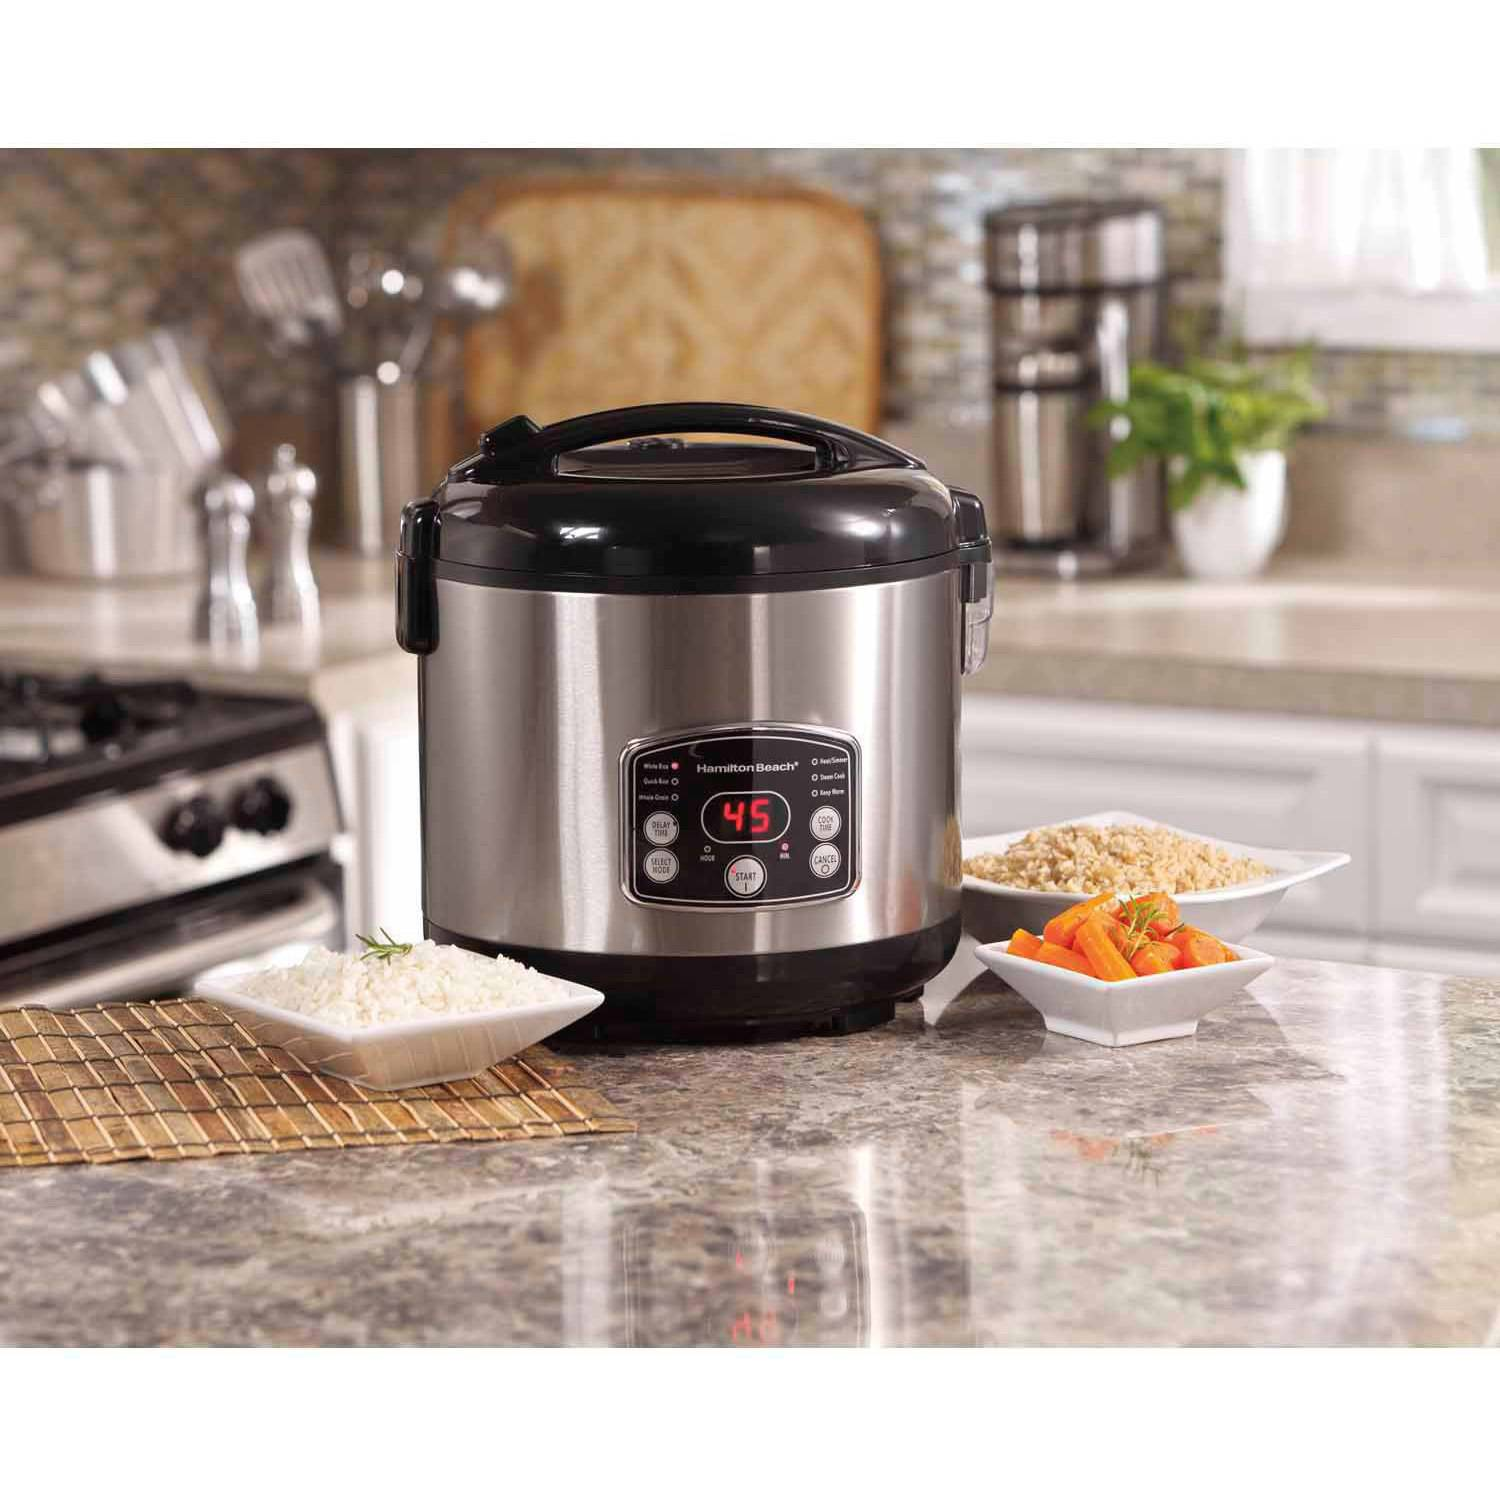 Hamilton Beach 5 Quart Digital Rice Steamer Cooker | Model# 37541